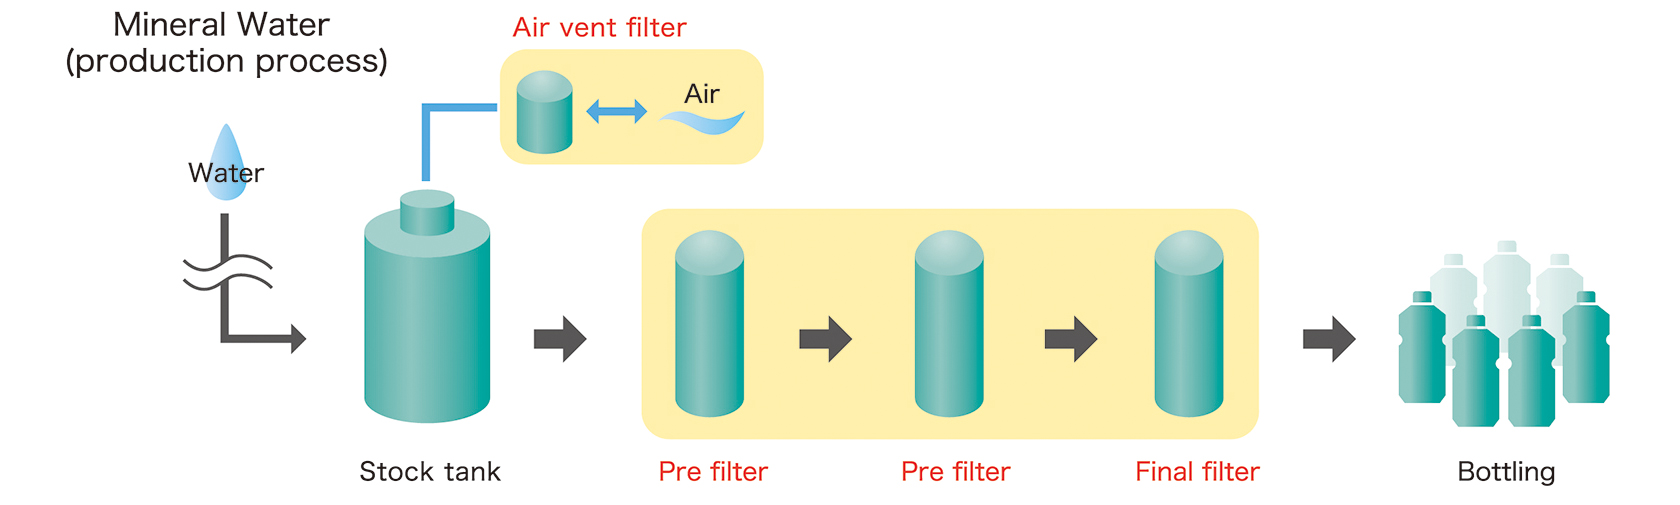 [image] Steps of bottle water manufacturing process, using FLF Cartridges (Air Vent filter), PPE (pre-filter) Cartridges, and PSK Cartridges (Final filter)